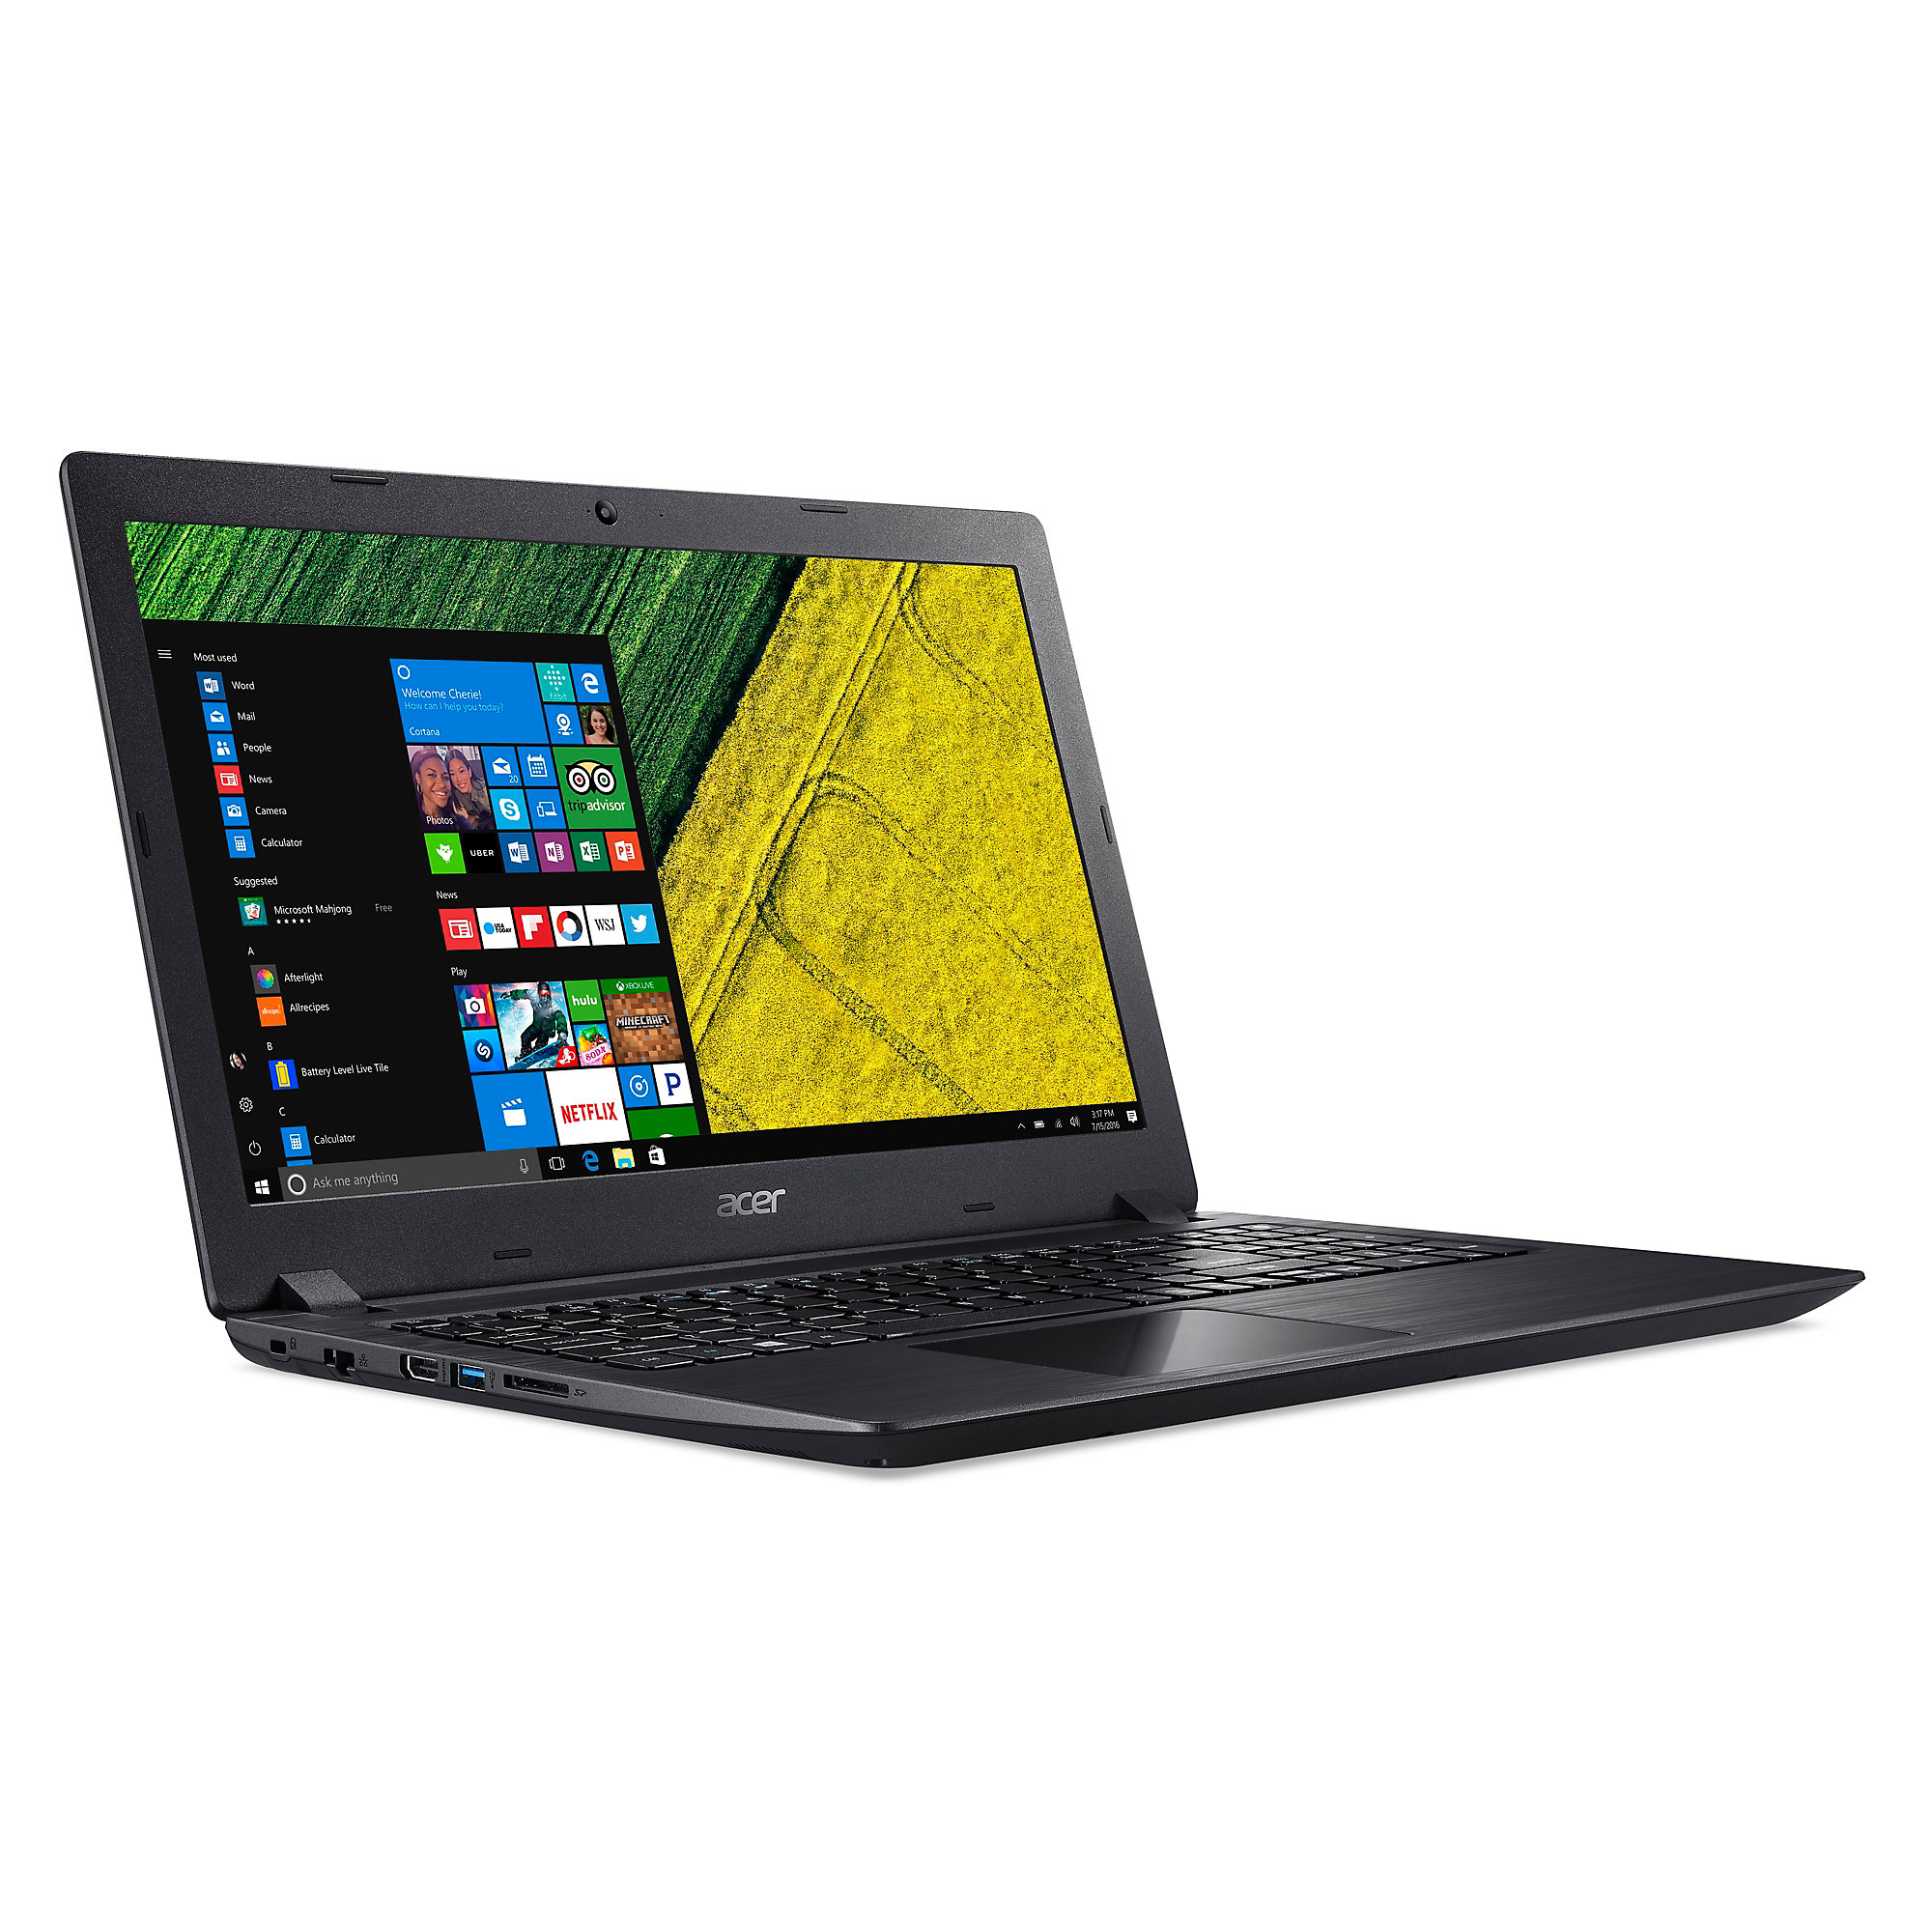 Acer Aspire 3040 Wireless LAN Driver Windows XP